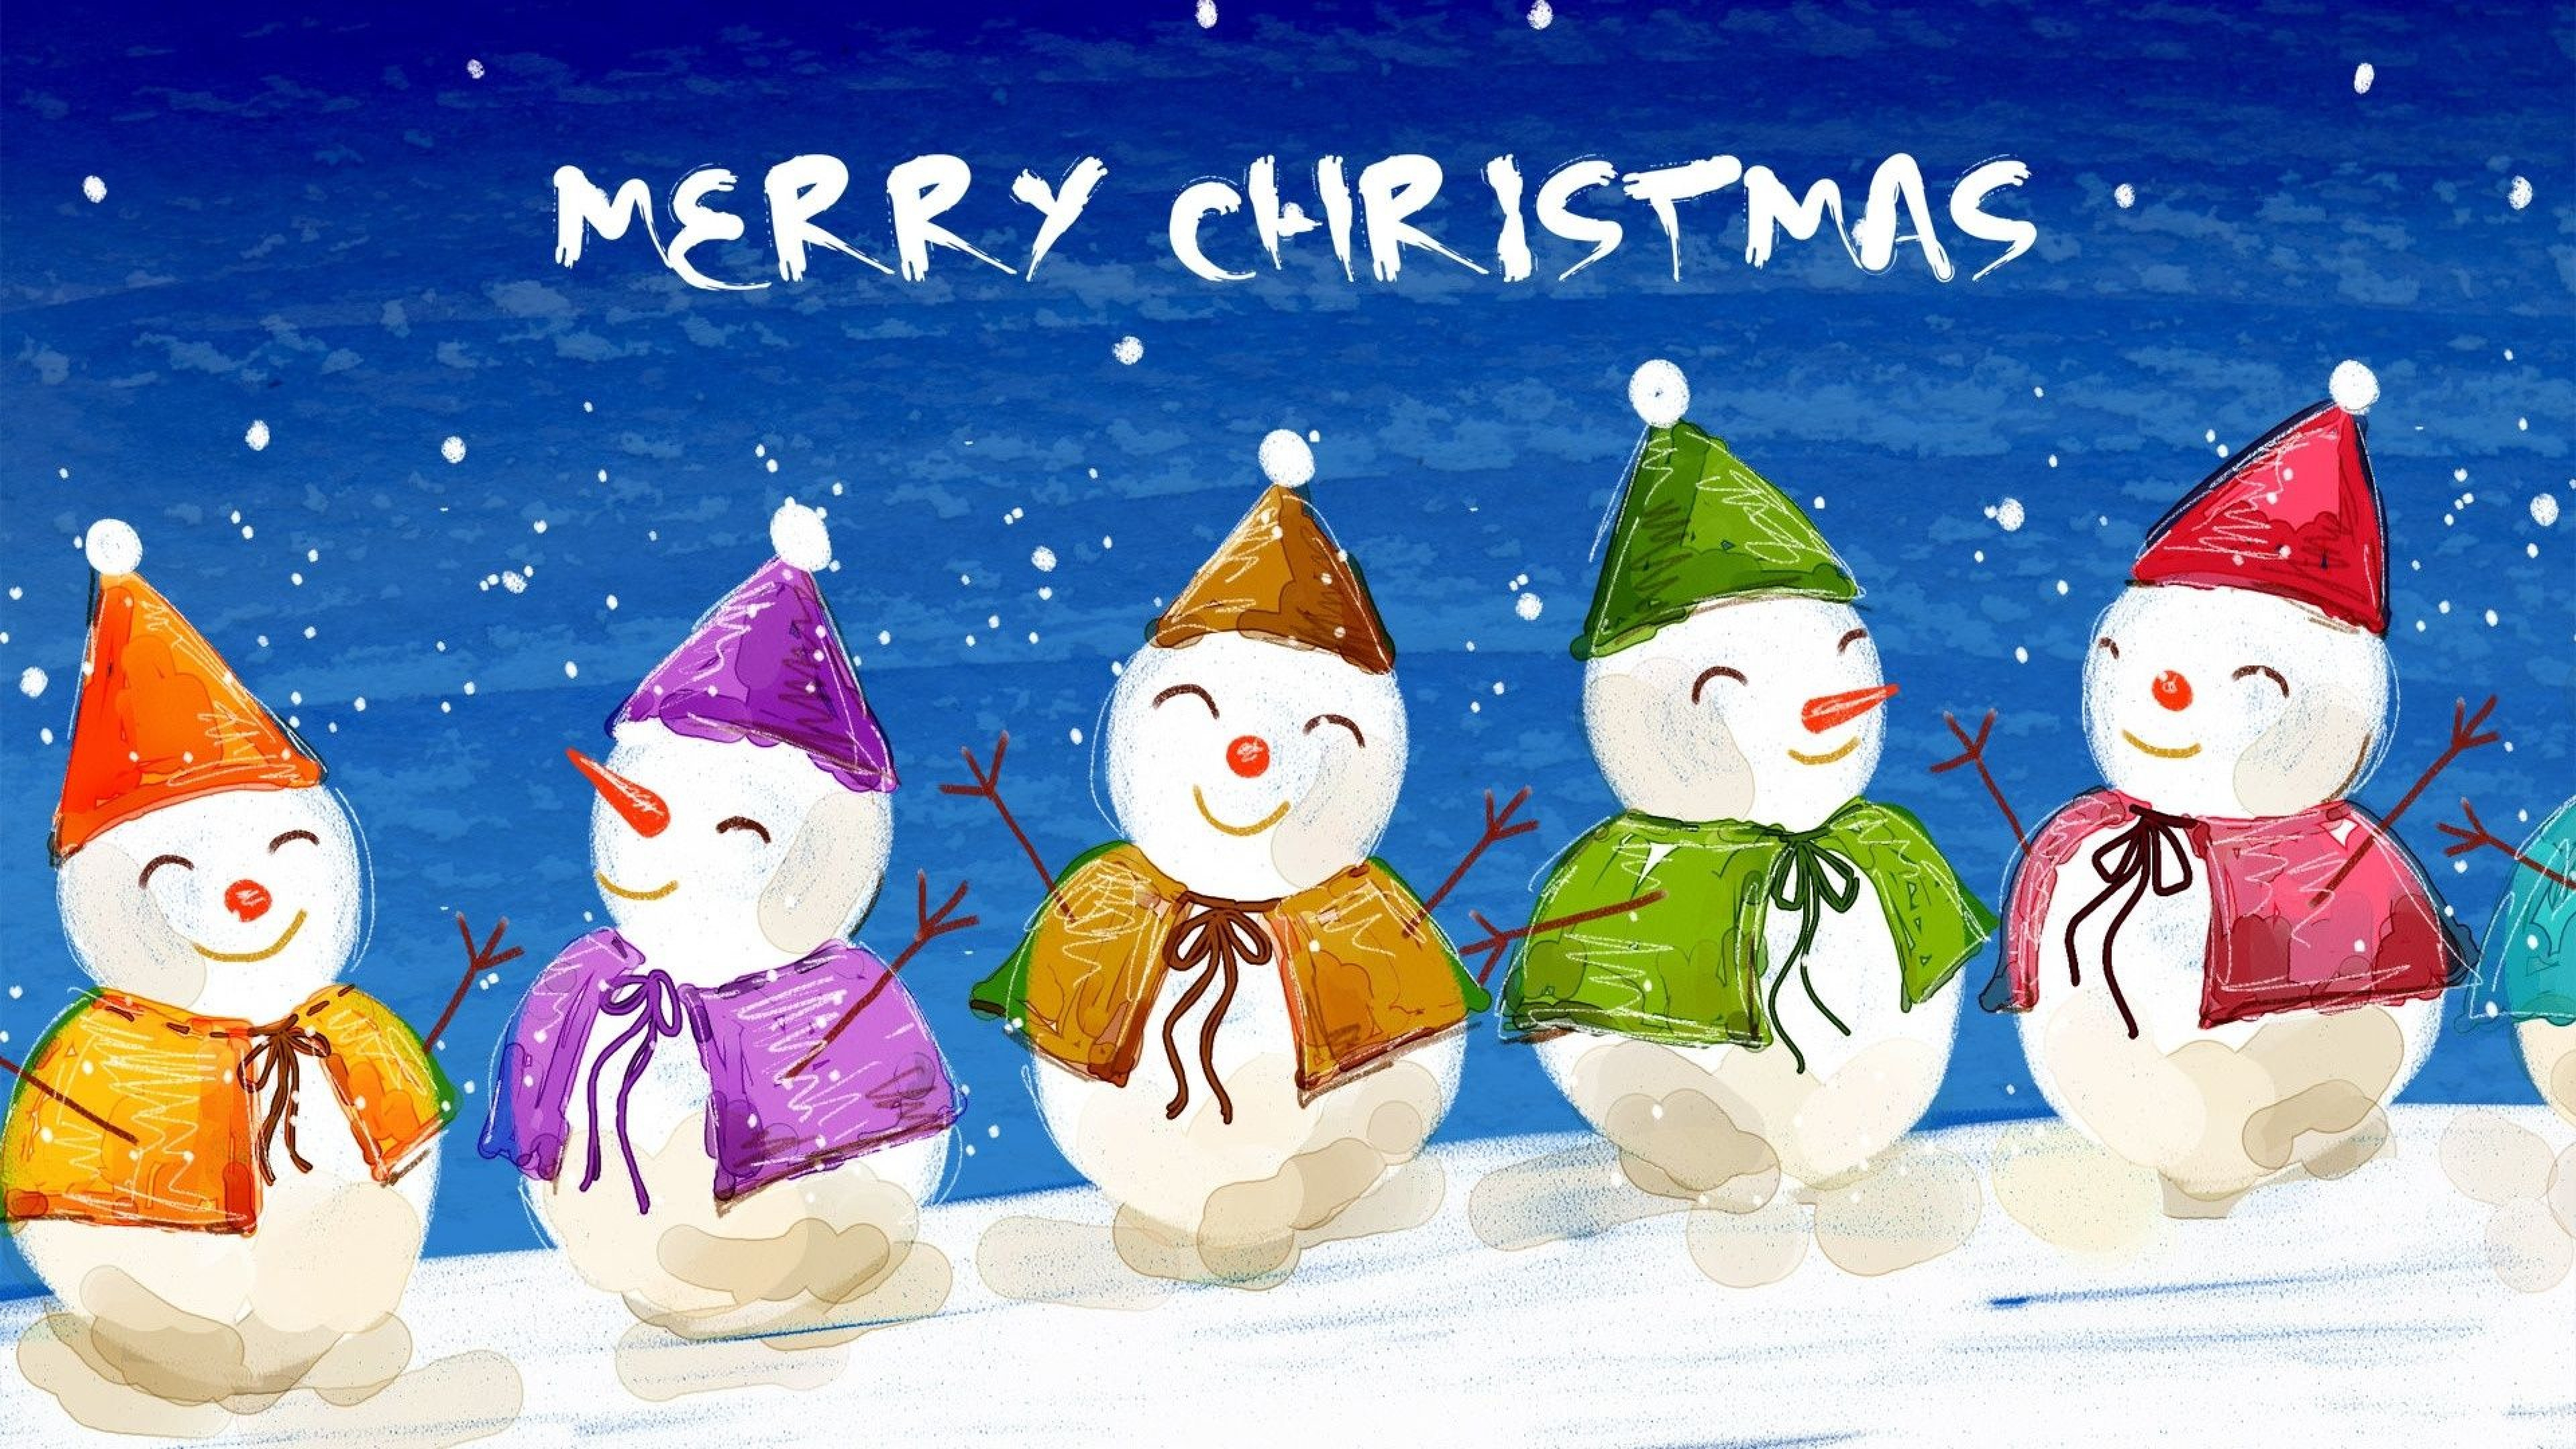 Christmas Snowman Image HD Wallpaper 3840x2160